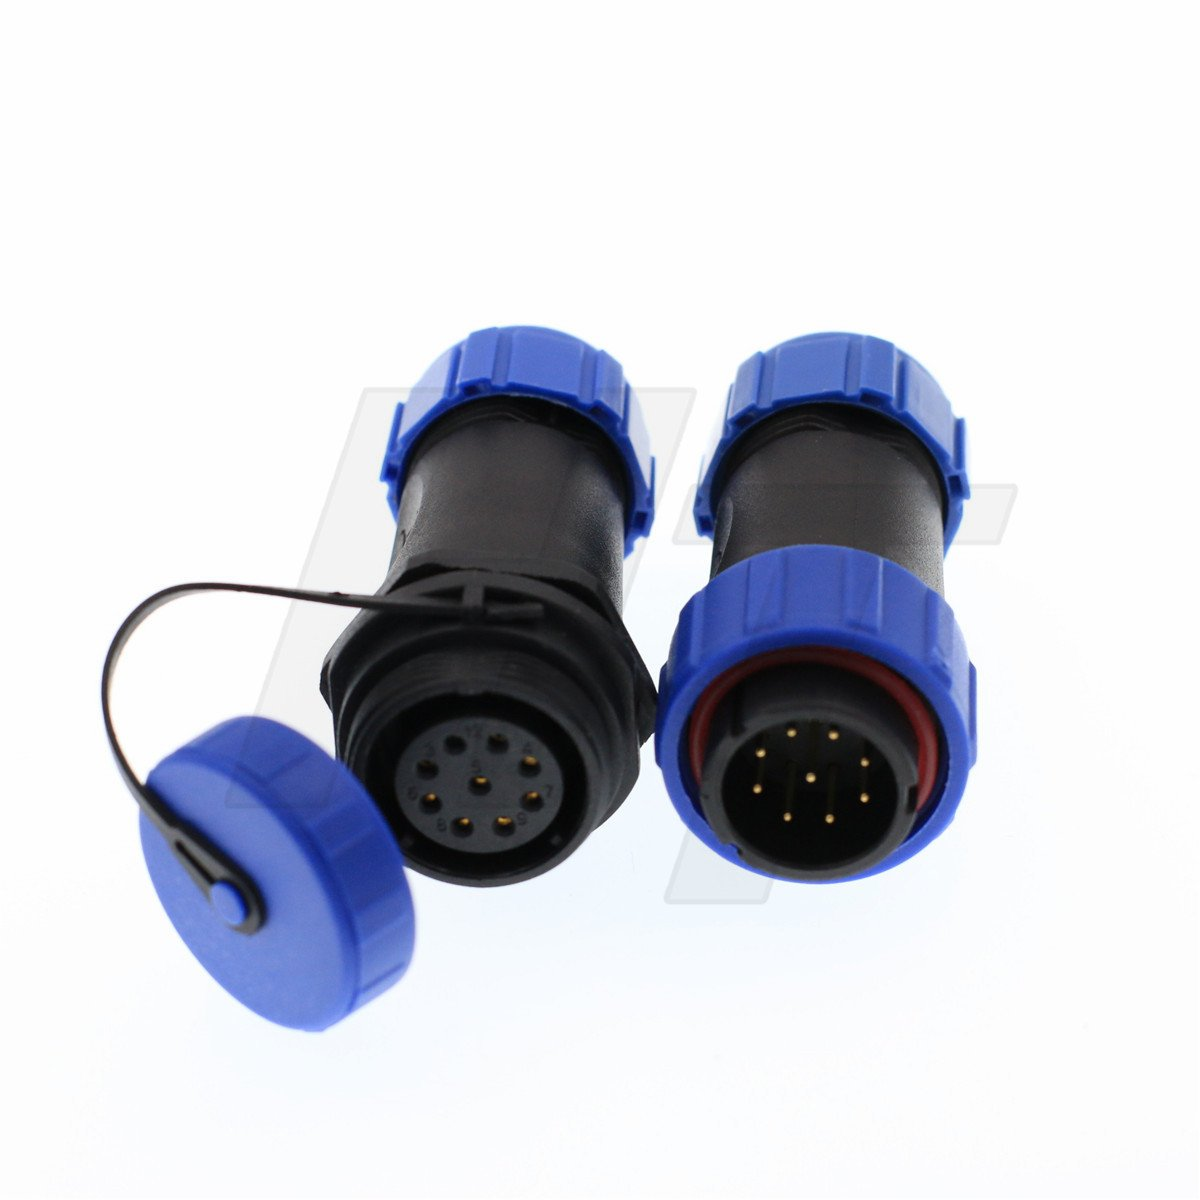 HangTon HE21 9 Pin Waterproof Connector Light LED Power Device Aviation Quick Disconnect Cable Plug & Socket